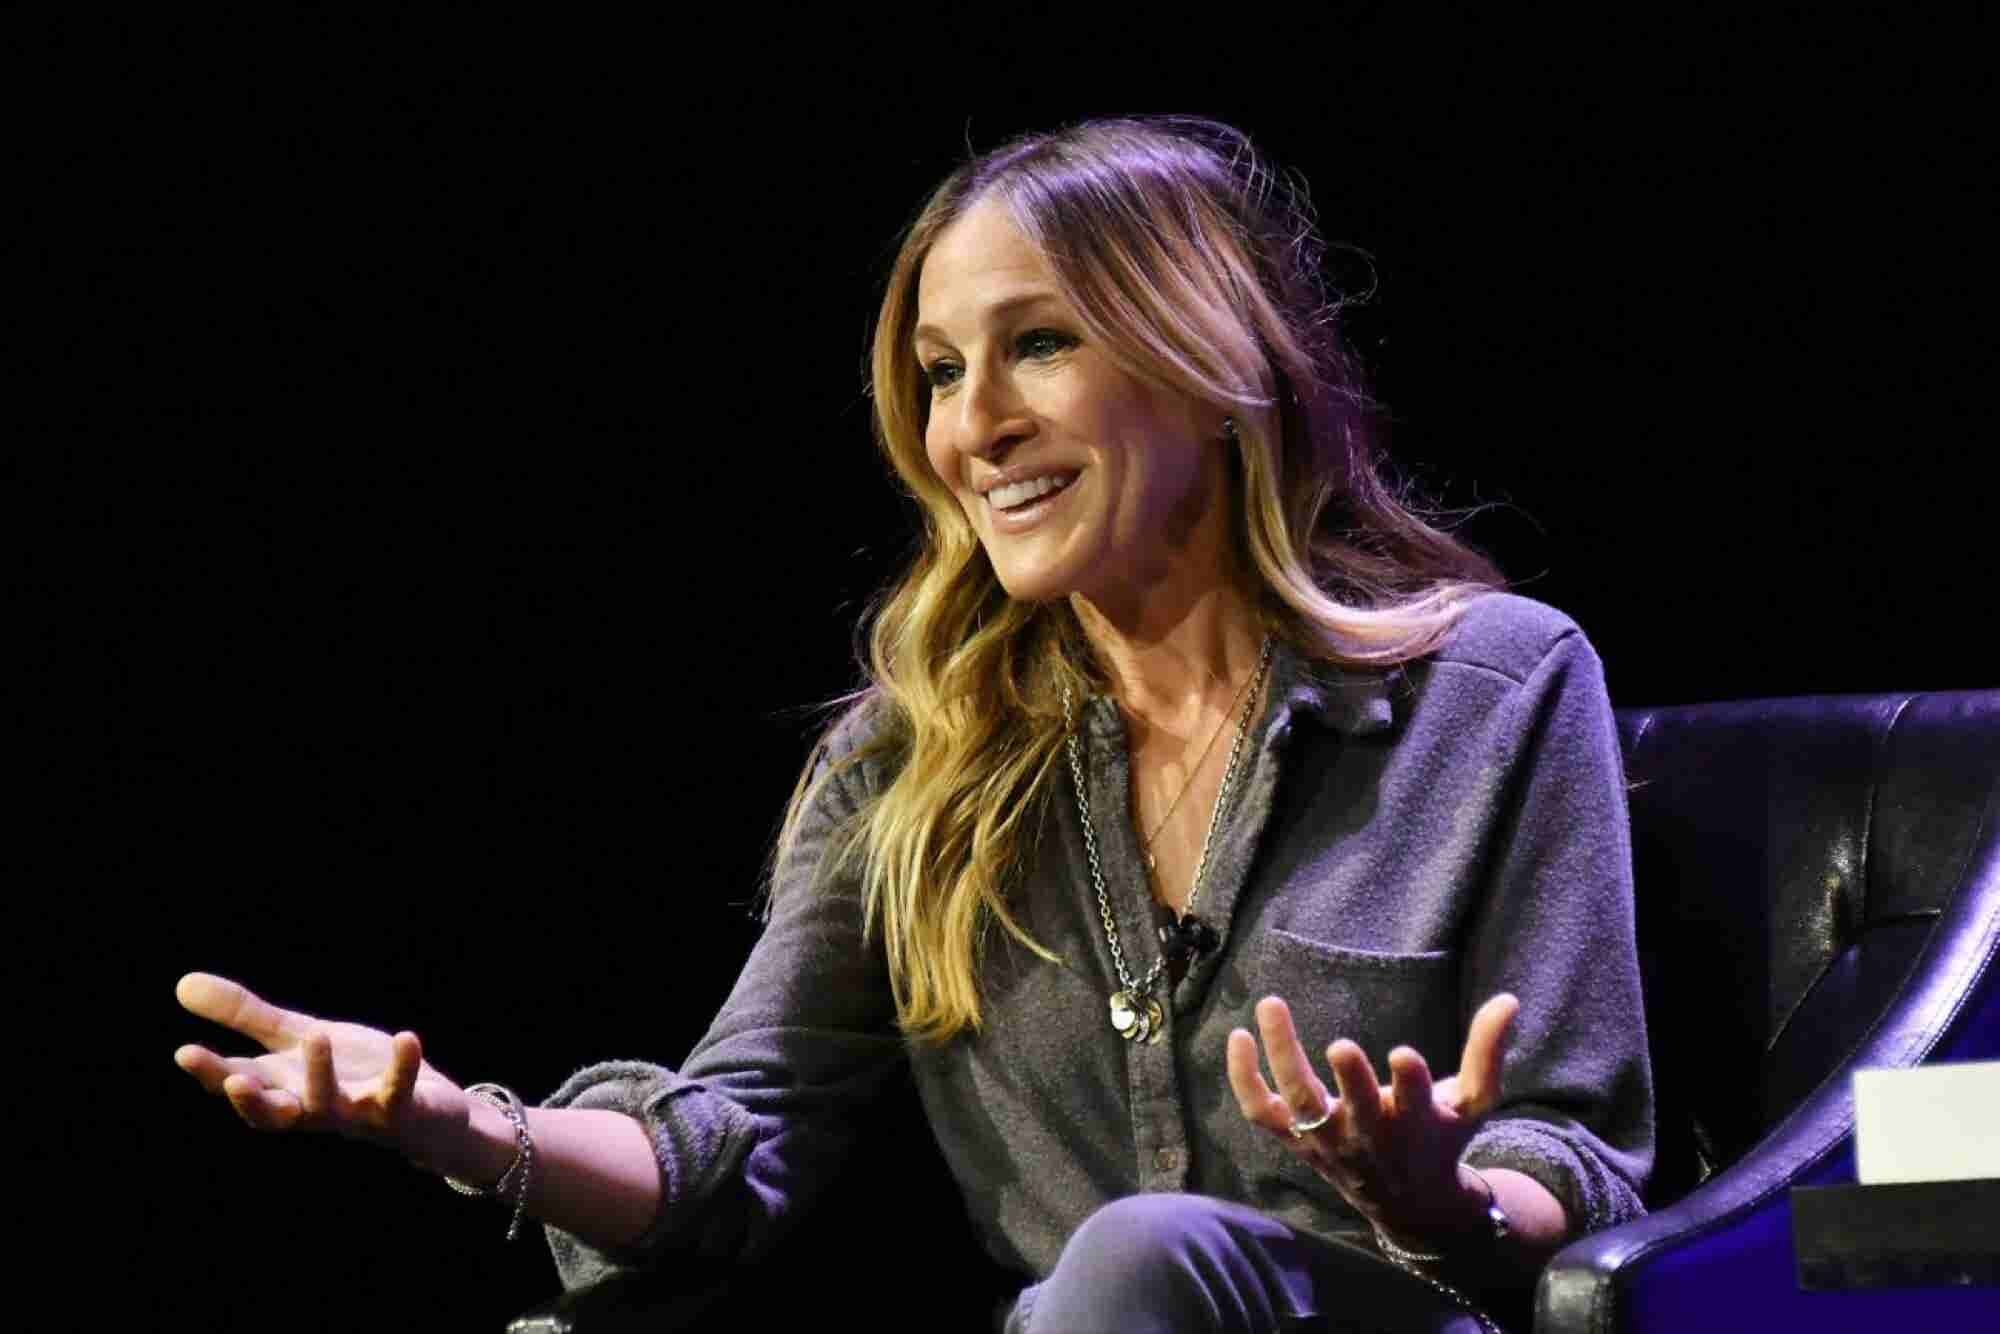 Sarah Jessica Parker Shares What Motivates Her, and What Scares Her